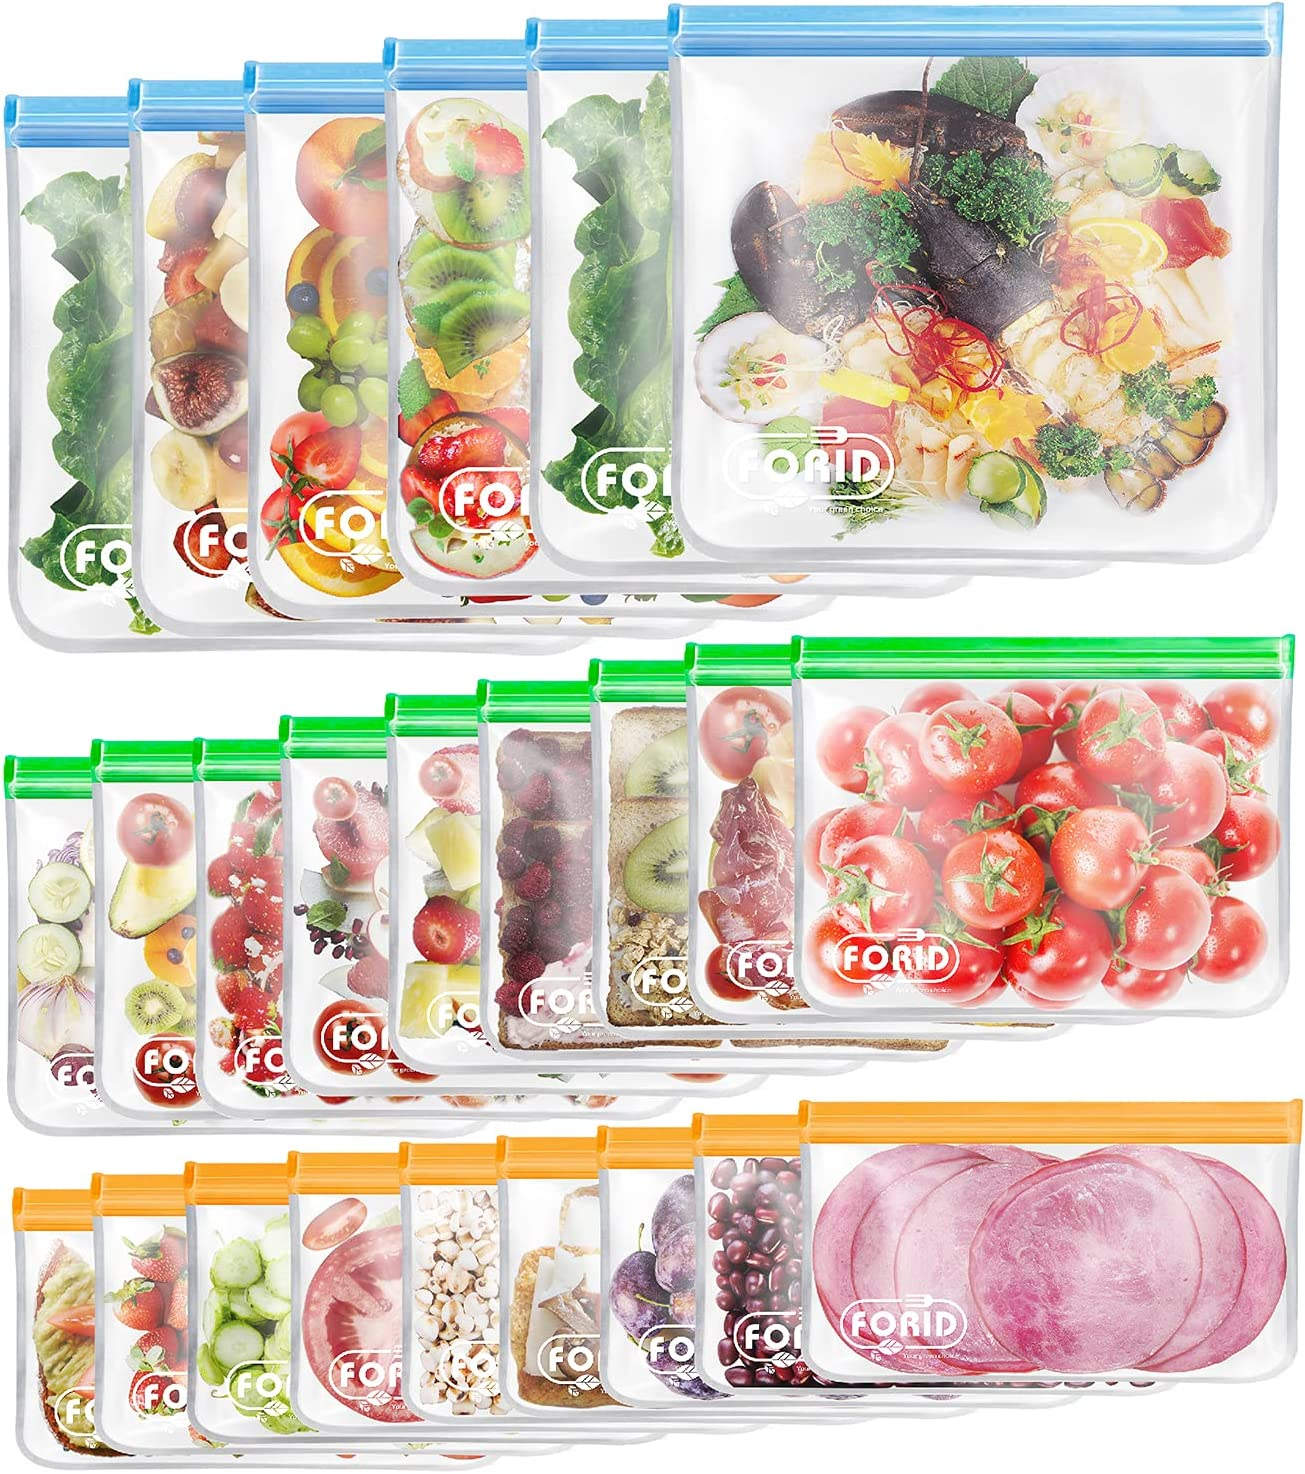 24 Pack Reusable Food Storage Bags - Non Plastic & Silicone Gallon Freezer Bags Sandwich Snack Resealable Lunch Bags Extra Thick Leakproof for Marinate Food & Fruit Cereal Travel Items Home Kitchen